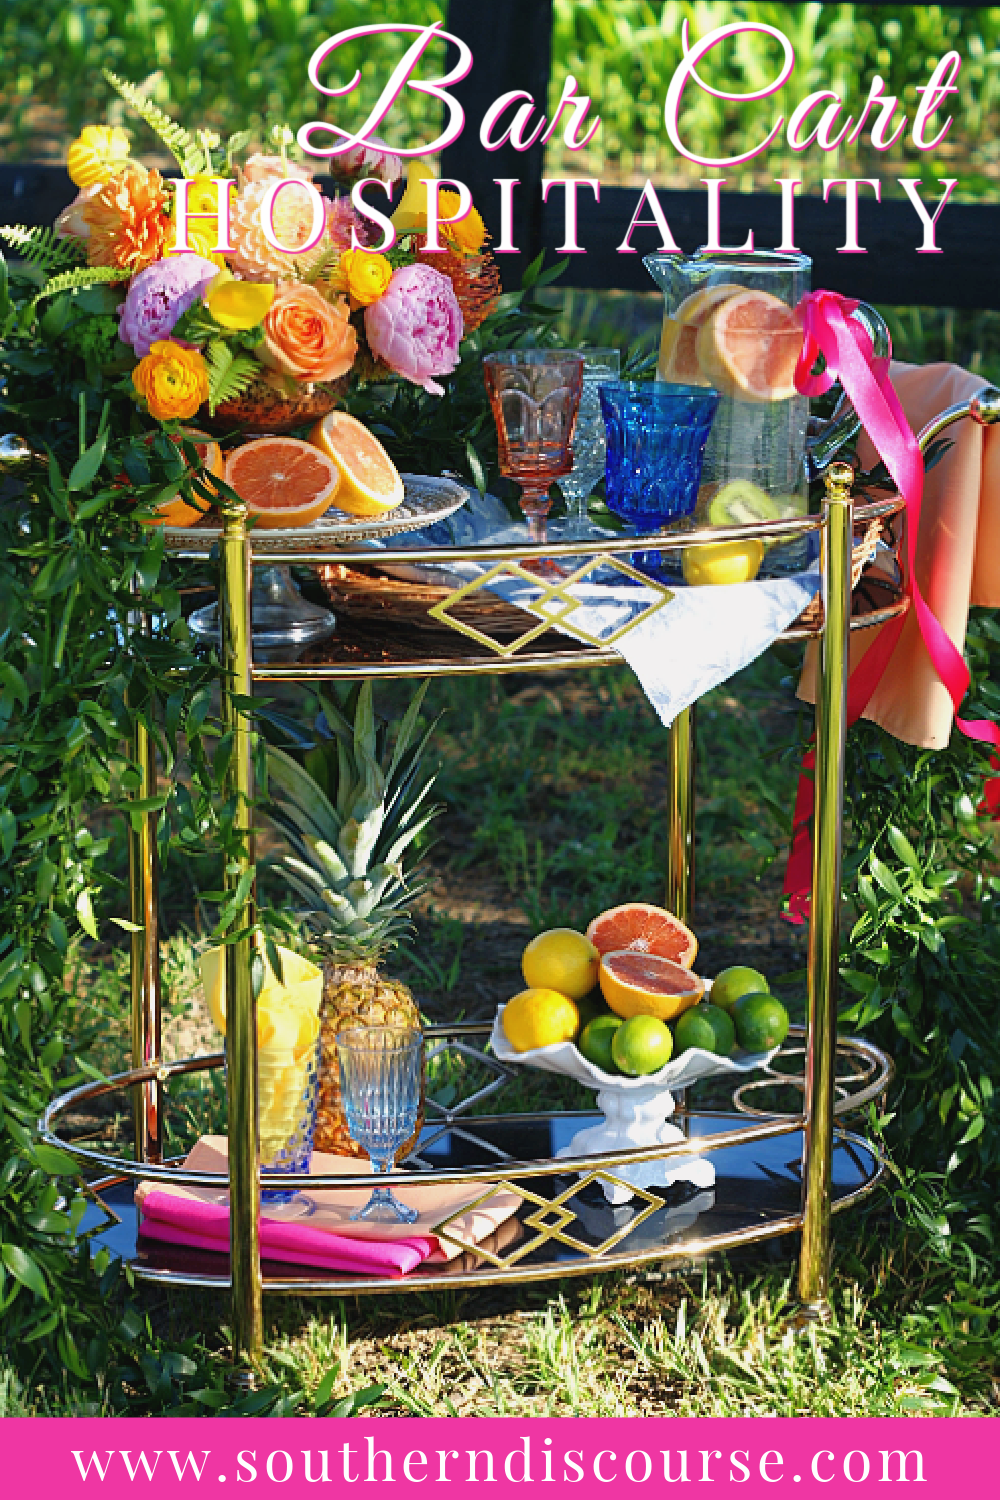 Bar Carts are undeniably versatile, fabulous and reach way beyond cocktail hour. Discover how to use them for parties or everyday hospitality. #nonalcoholic